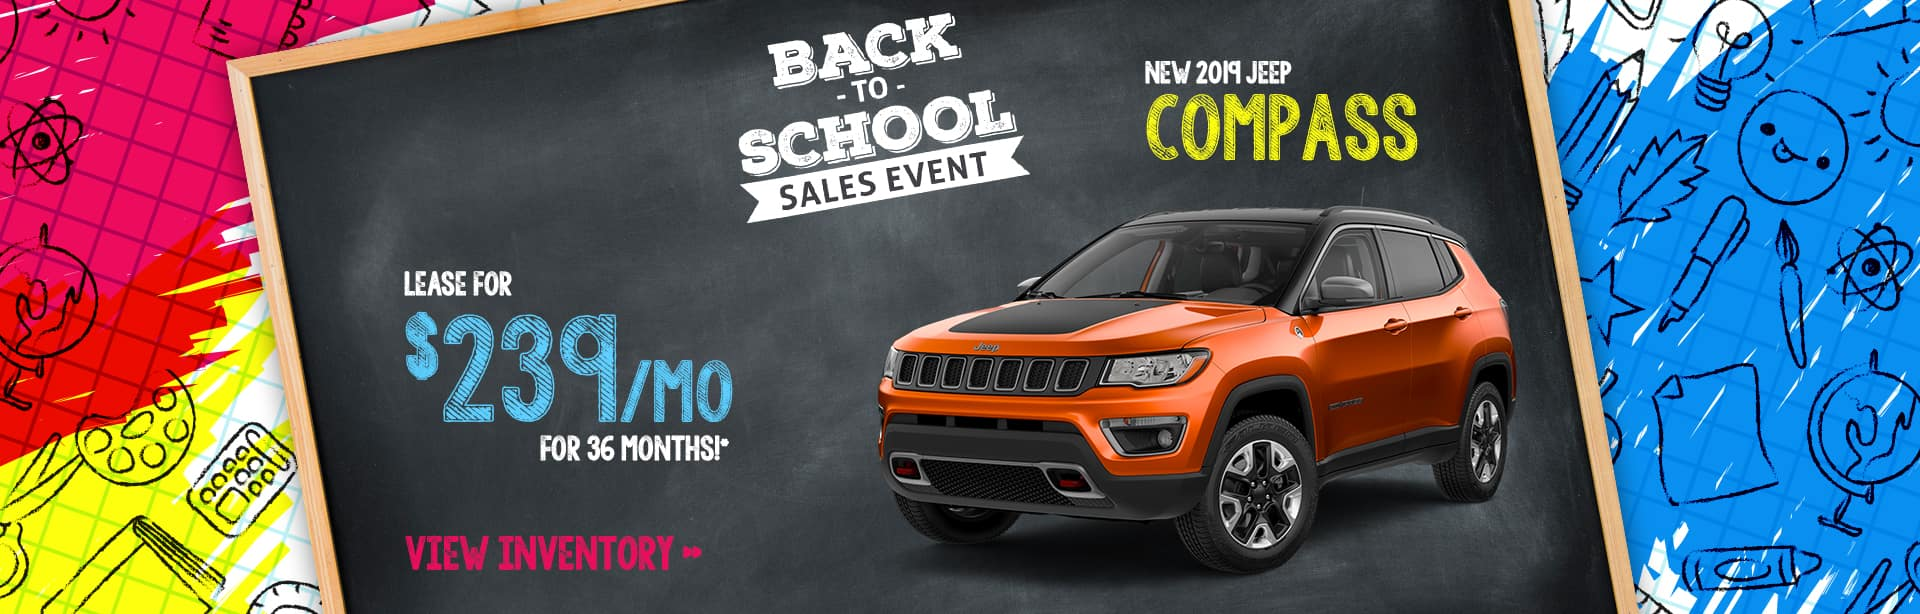 Best Lease deal on a New Jeep Compass near Greencastle, Indiana